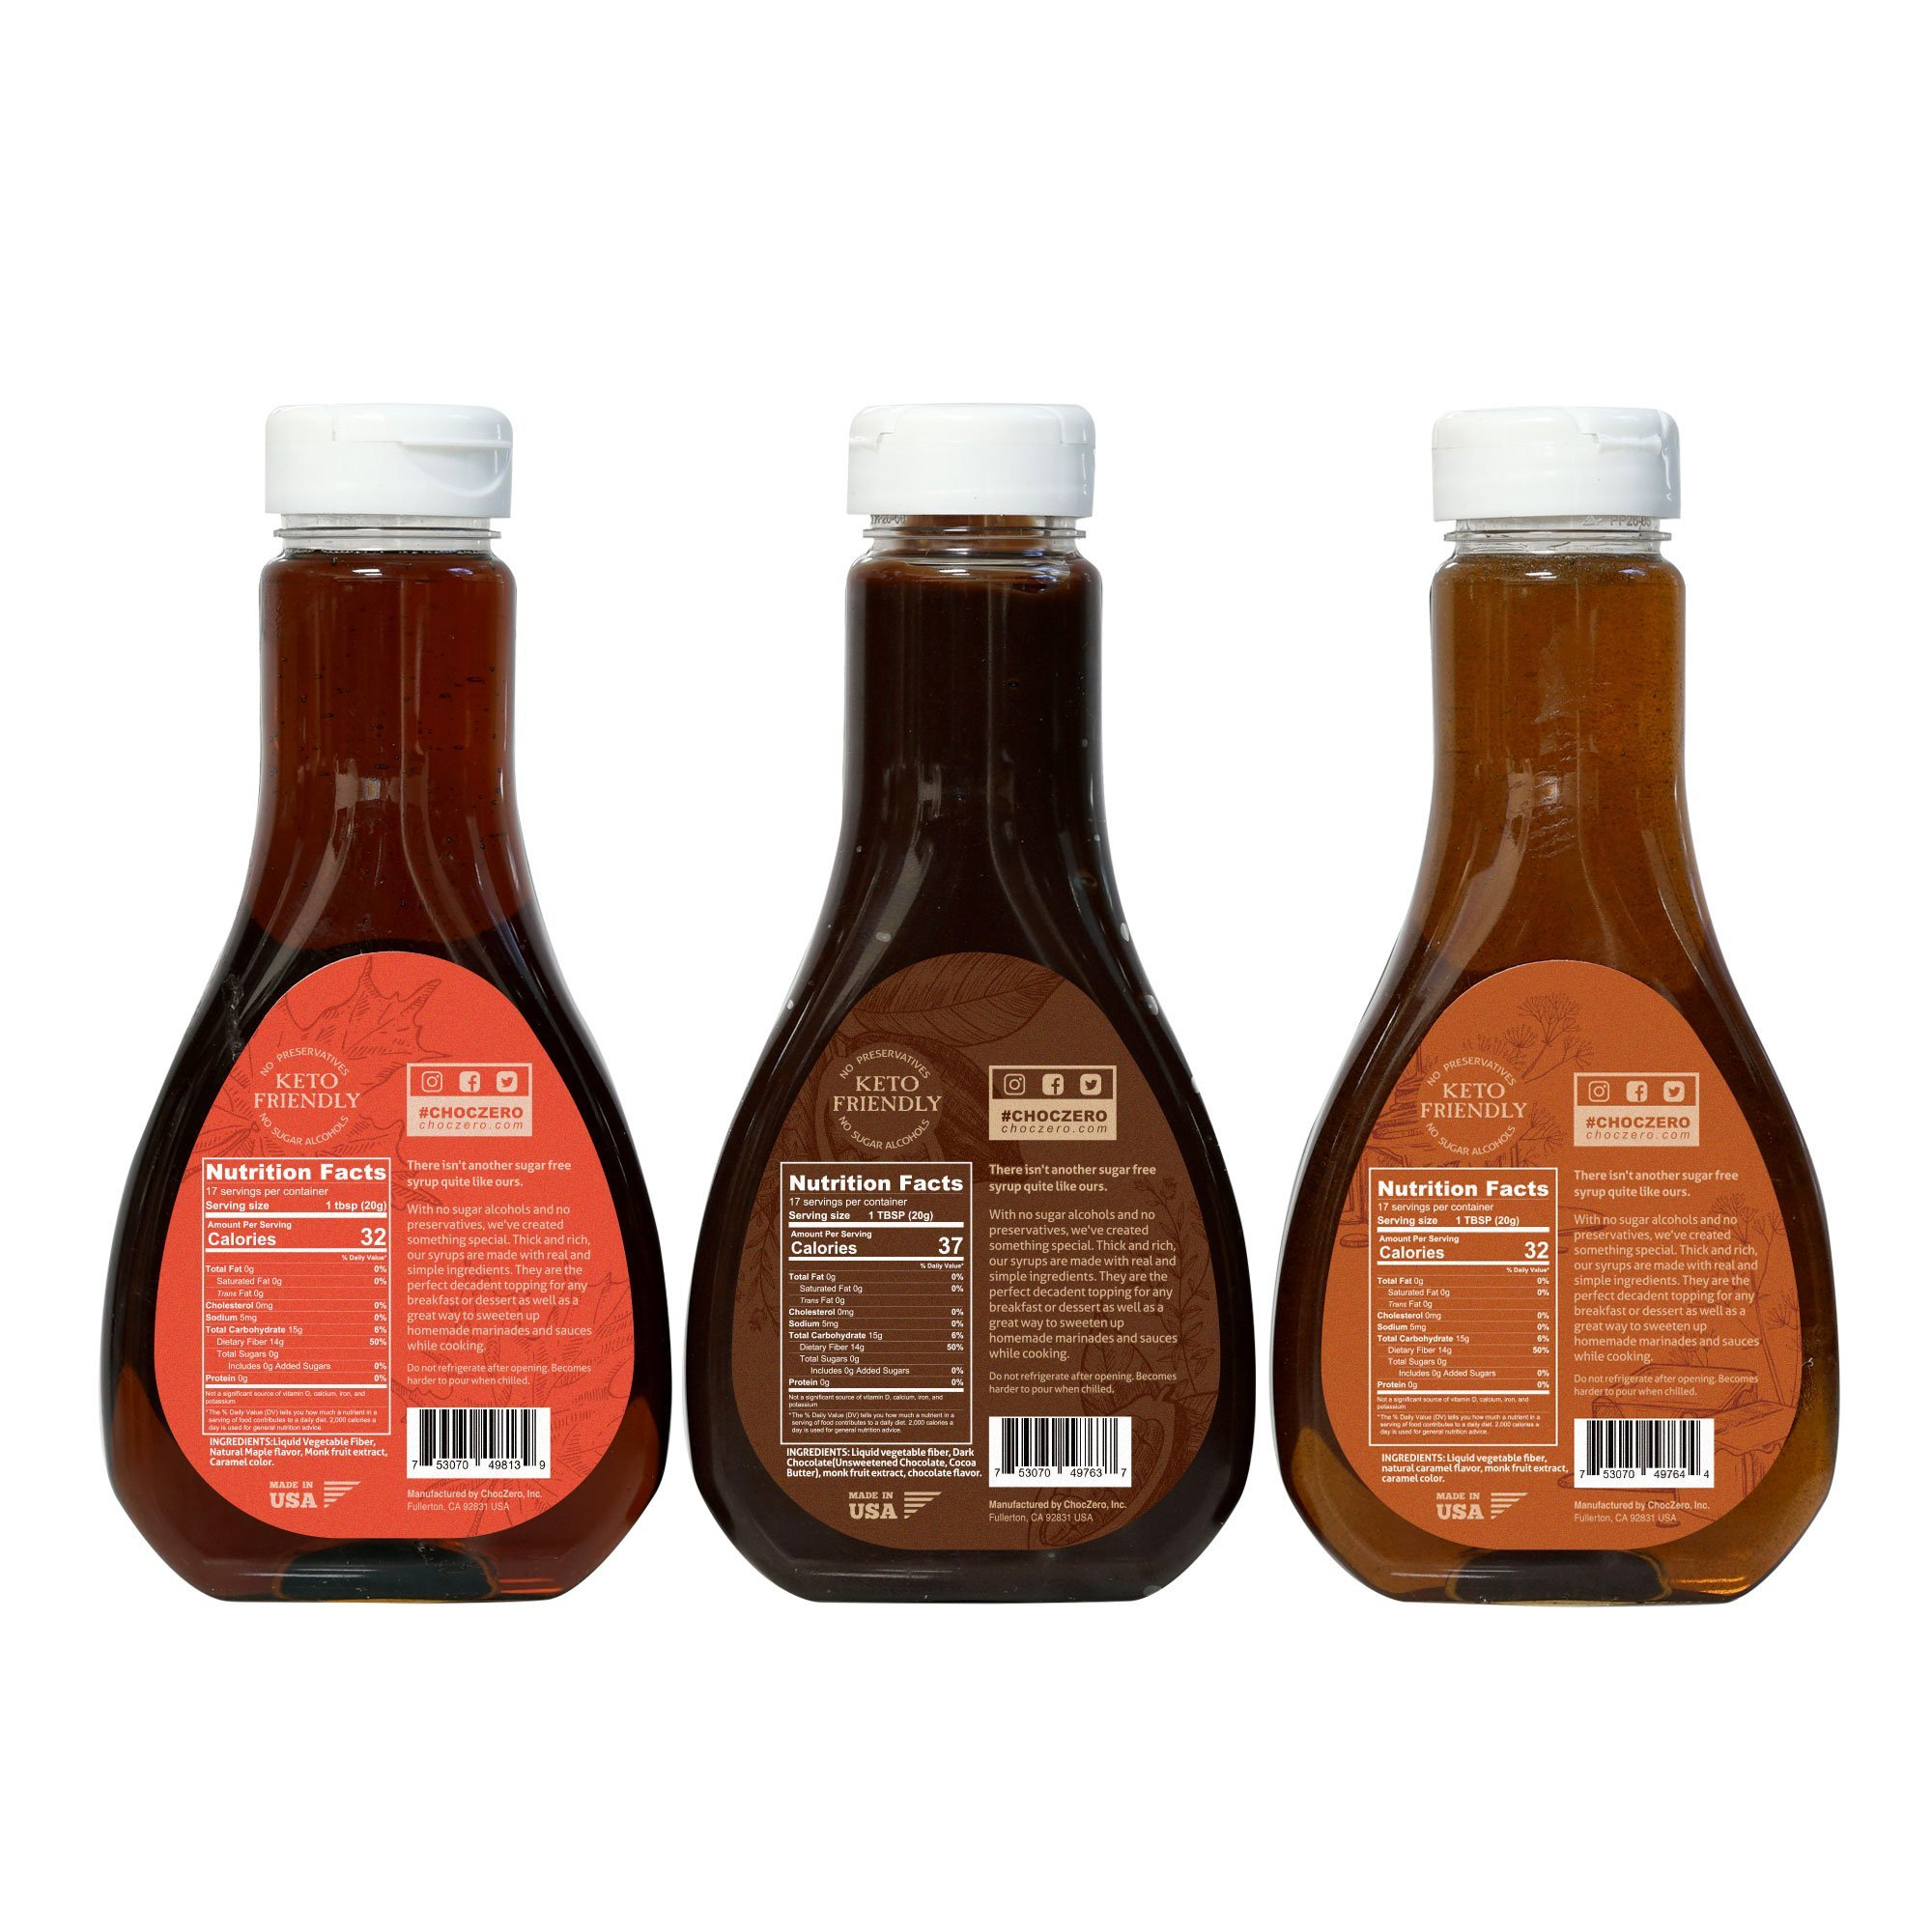 ChocZero Syrup Variety Pack. Sugar-free, Low Carb, No Preservatives. Thick and Rich. No Sugar Alcohol, Gluten-Free. 3 Bottles (Chocolate, Caramel, Maple) by ChocZero (Image #2)